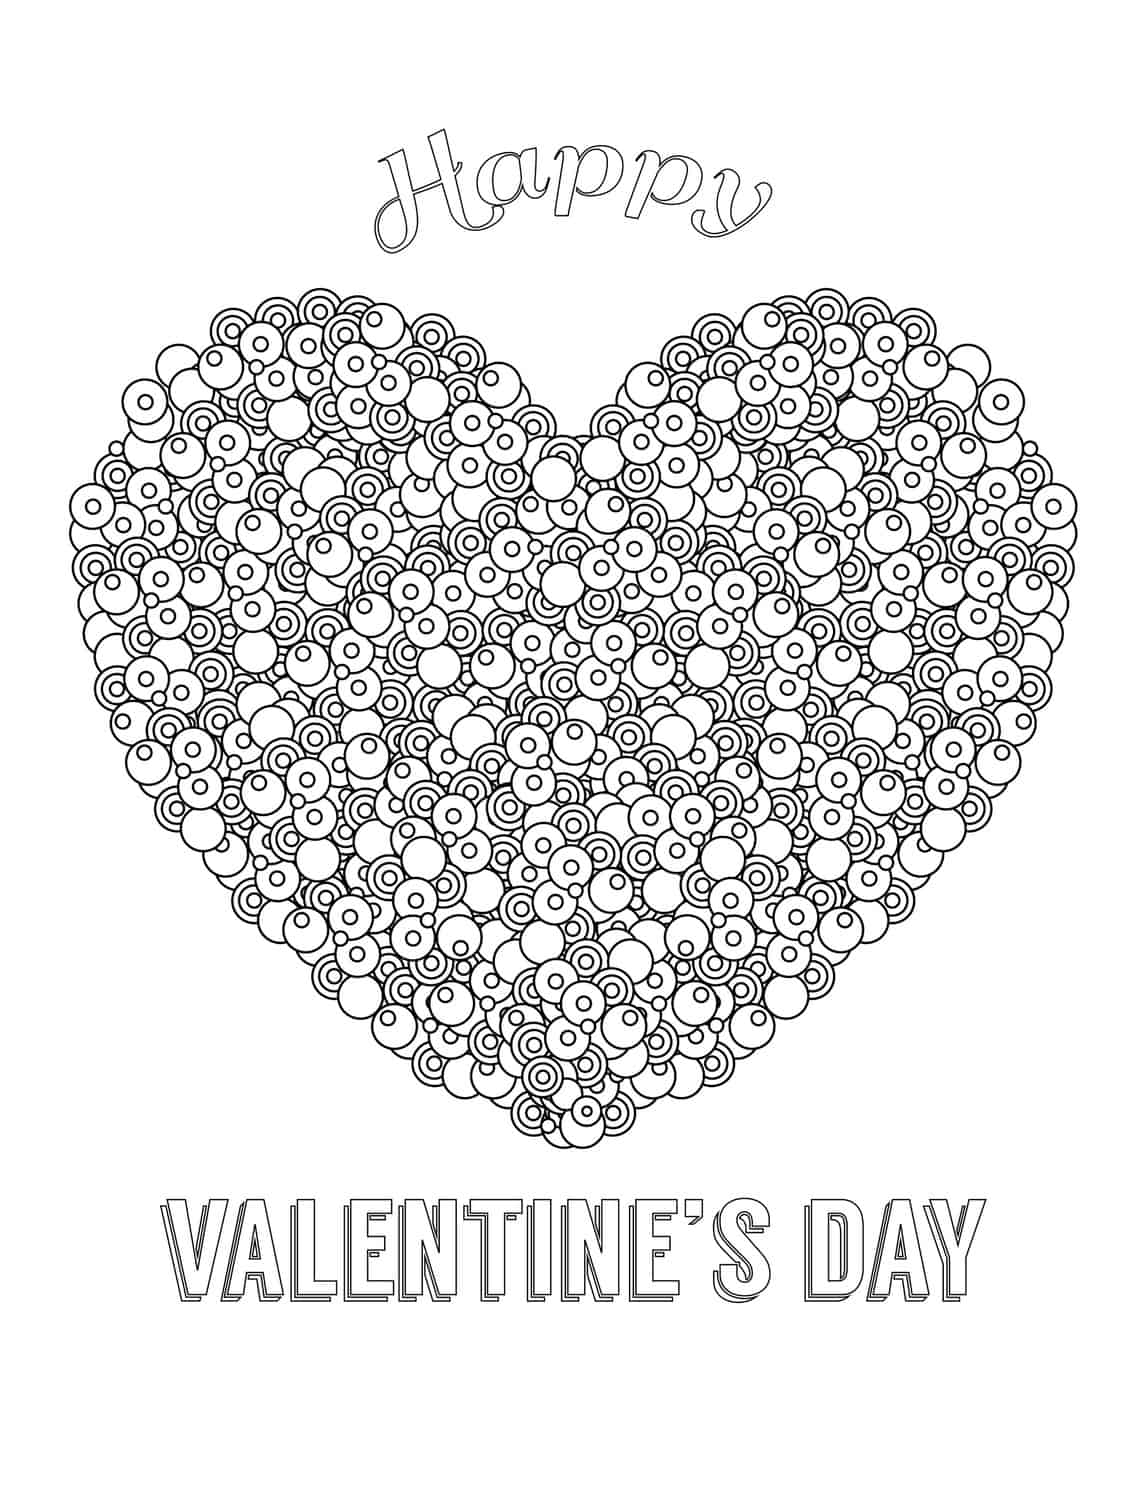 valentine coloring pages for adults 20 Free Printable Valentines Adult Coloring Pages   Nerdy Mamma valentine coloring pages for adults